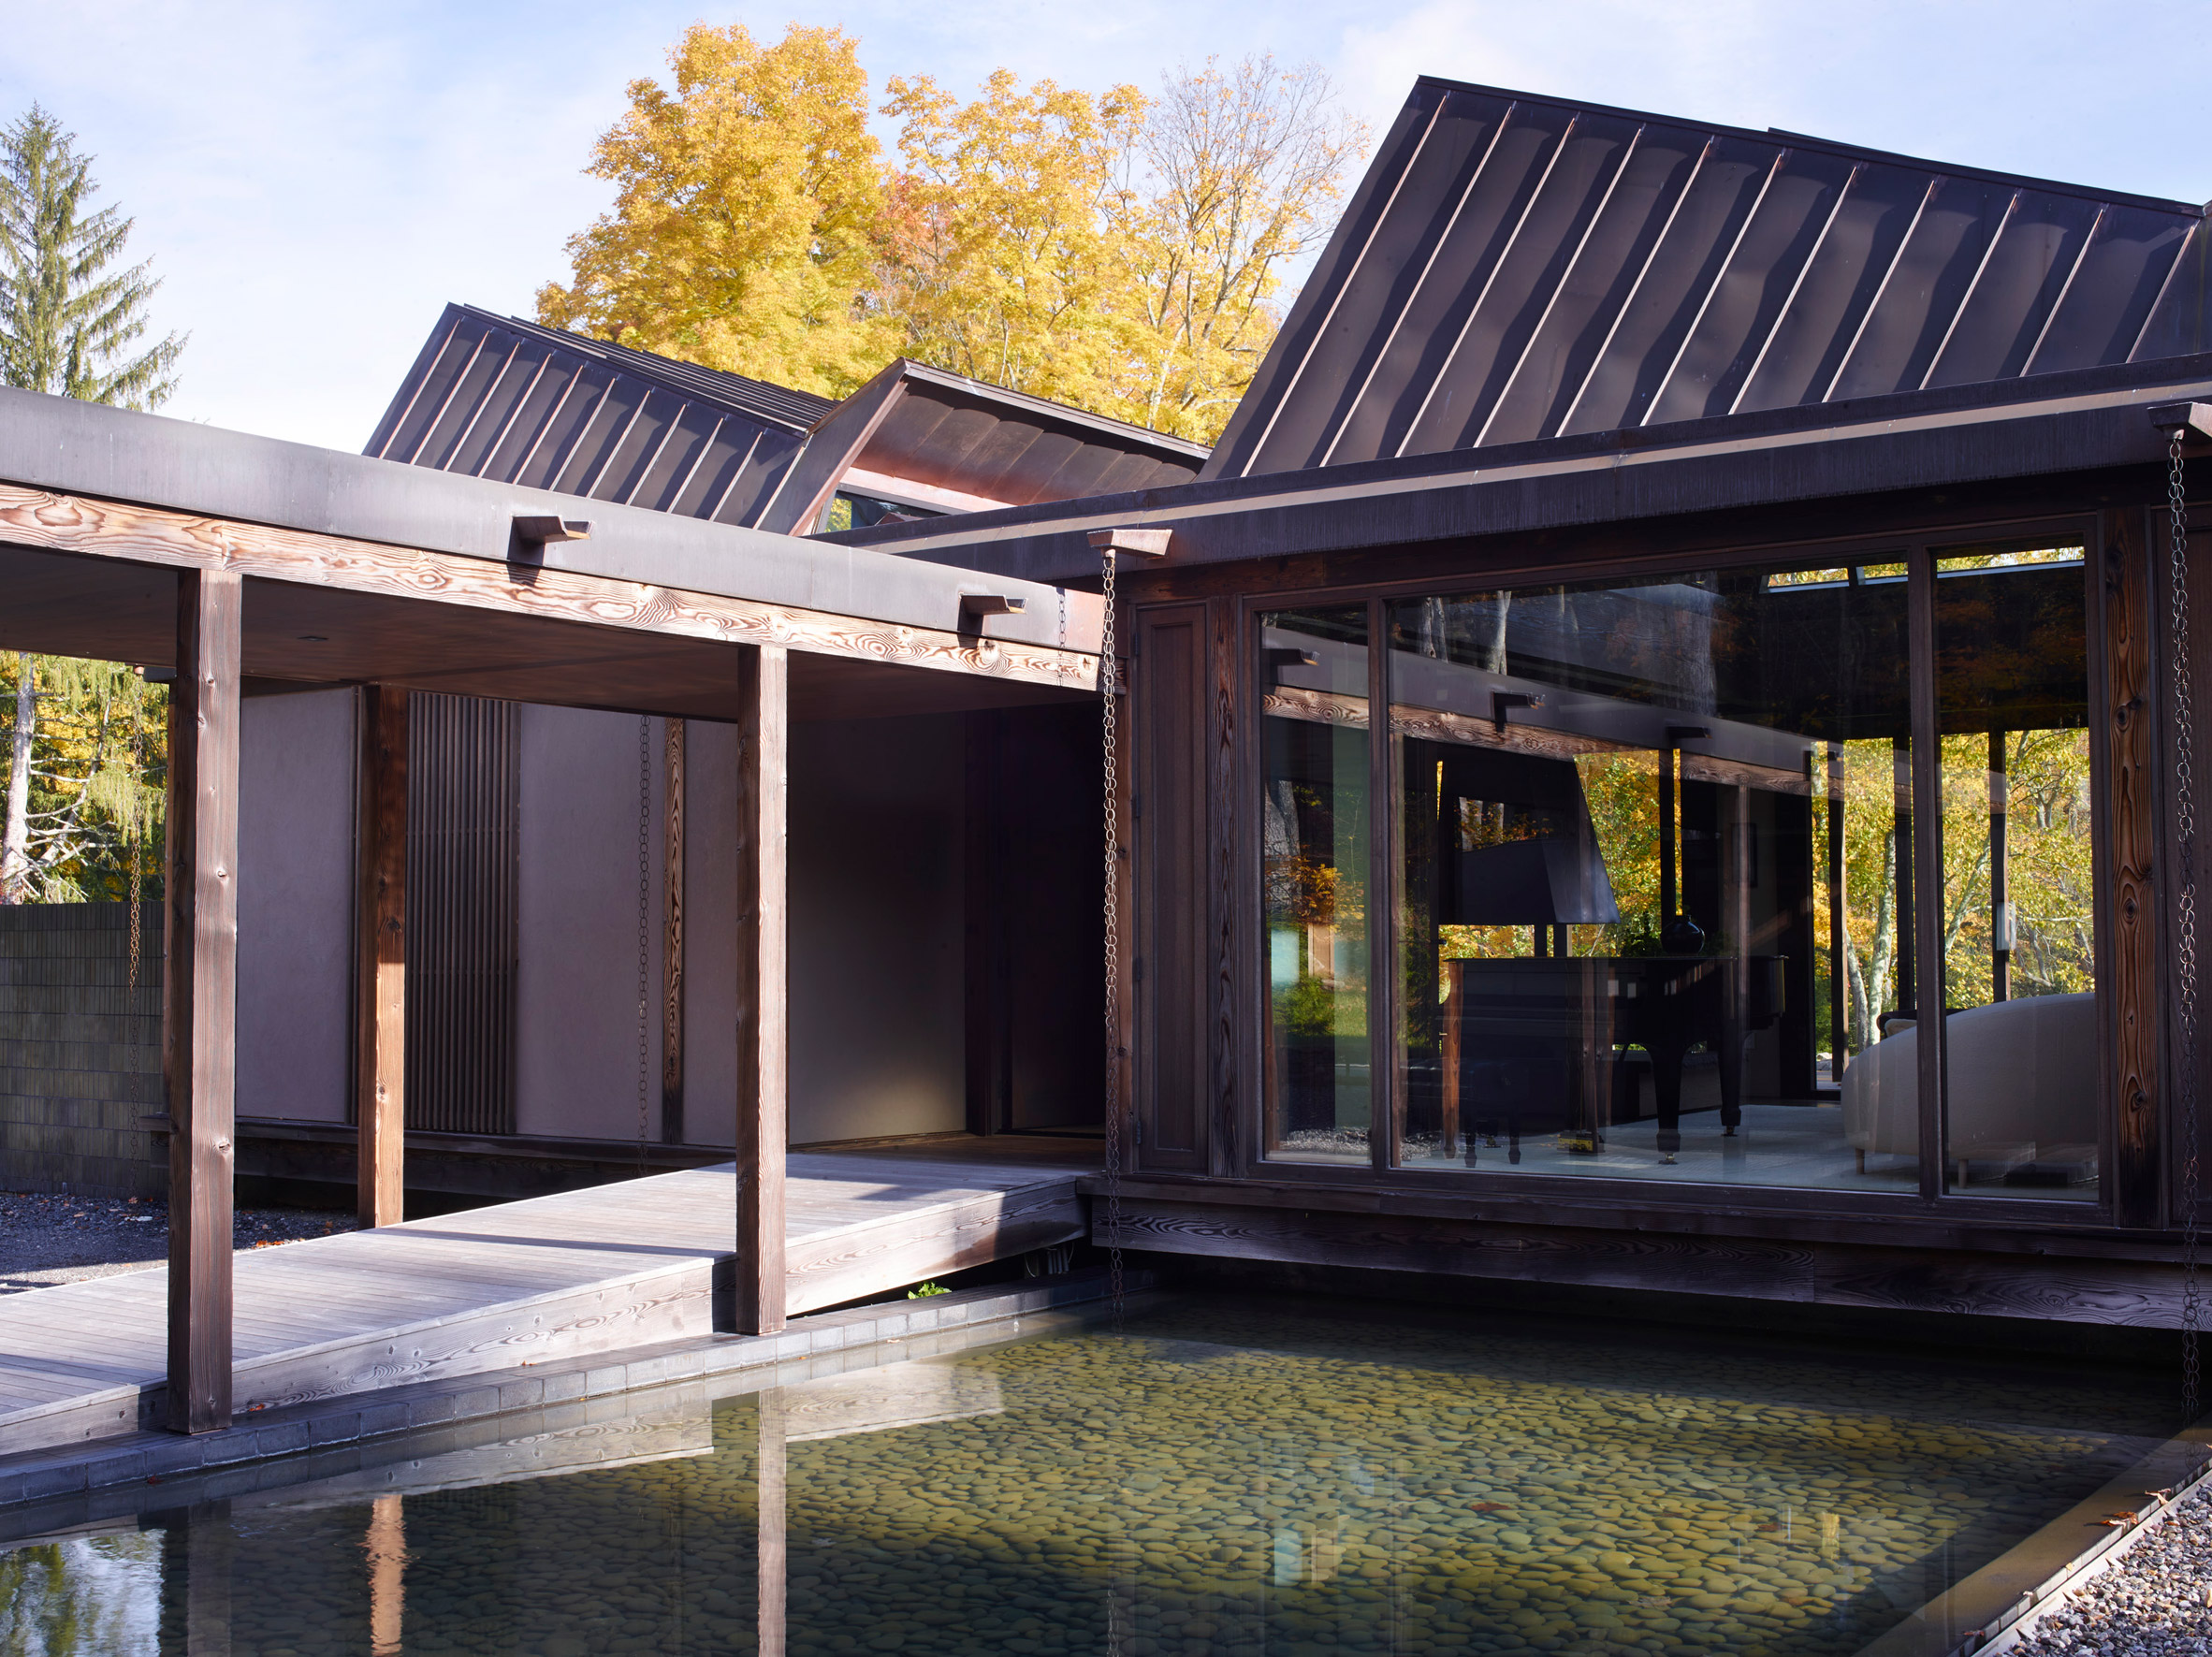 House Siding Ideas ? This Modern House Was Clad In Black Fibre Cement Panels With Matching Black Battens